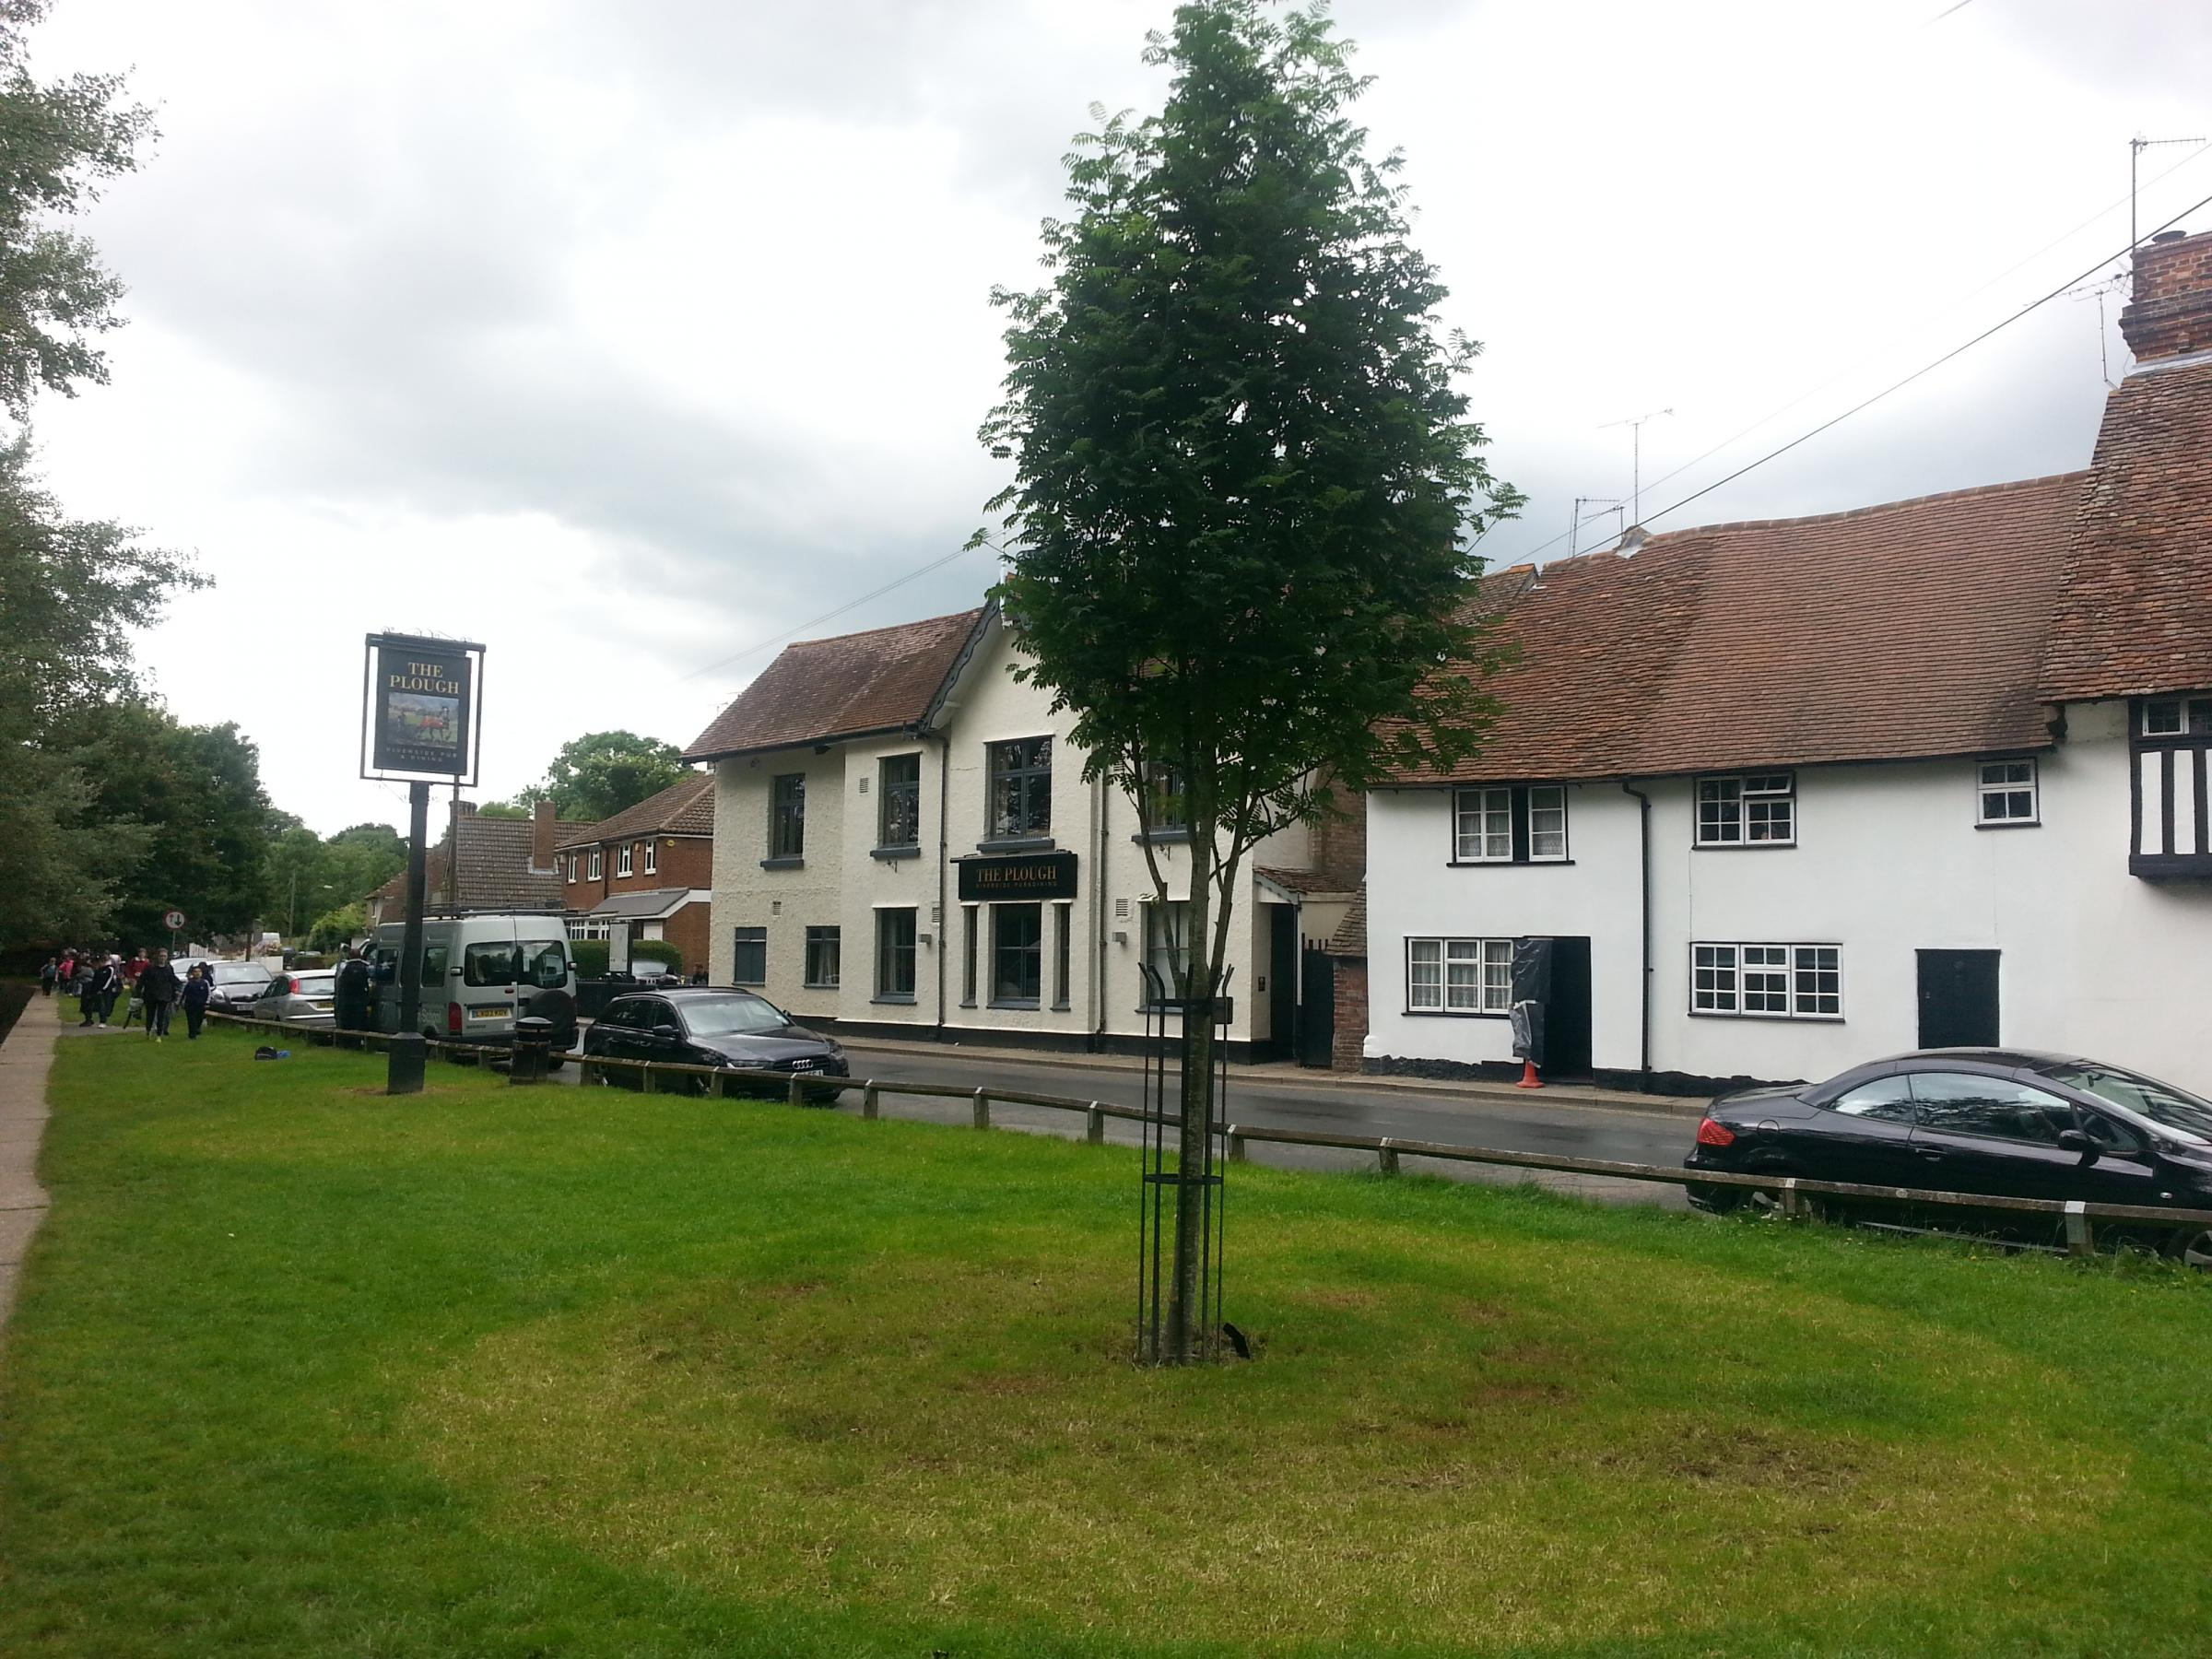 PubSpy reviews The Plough Inn, Eynsford